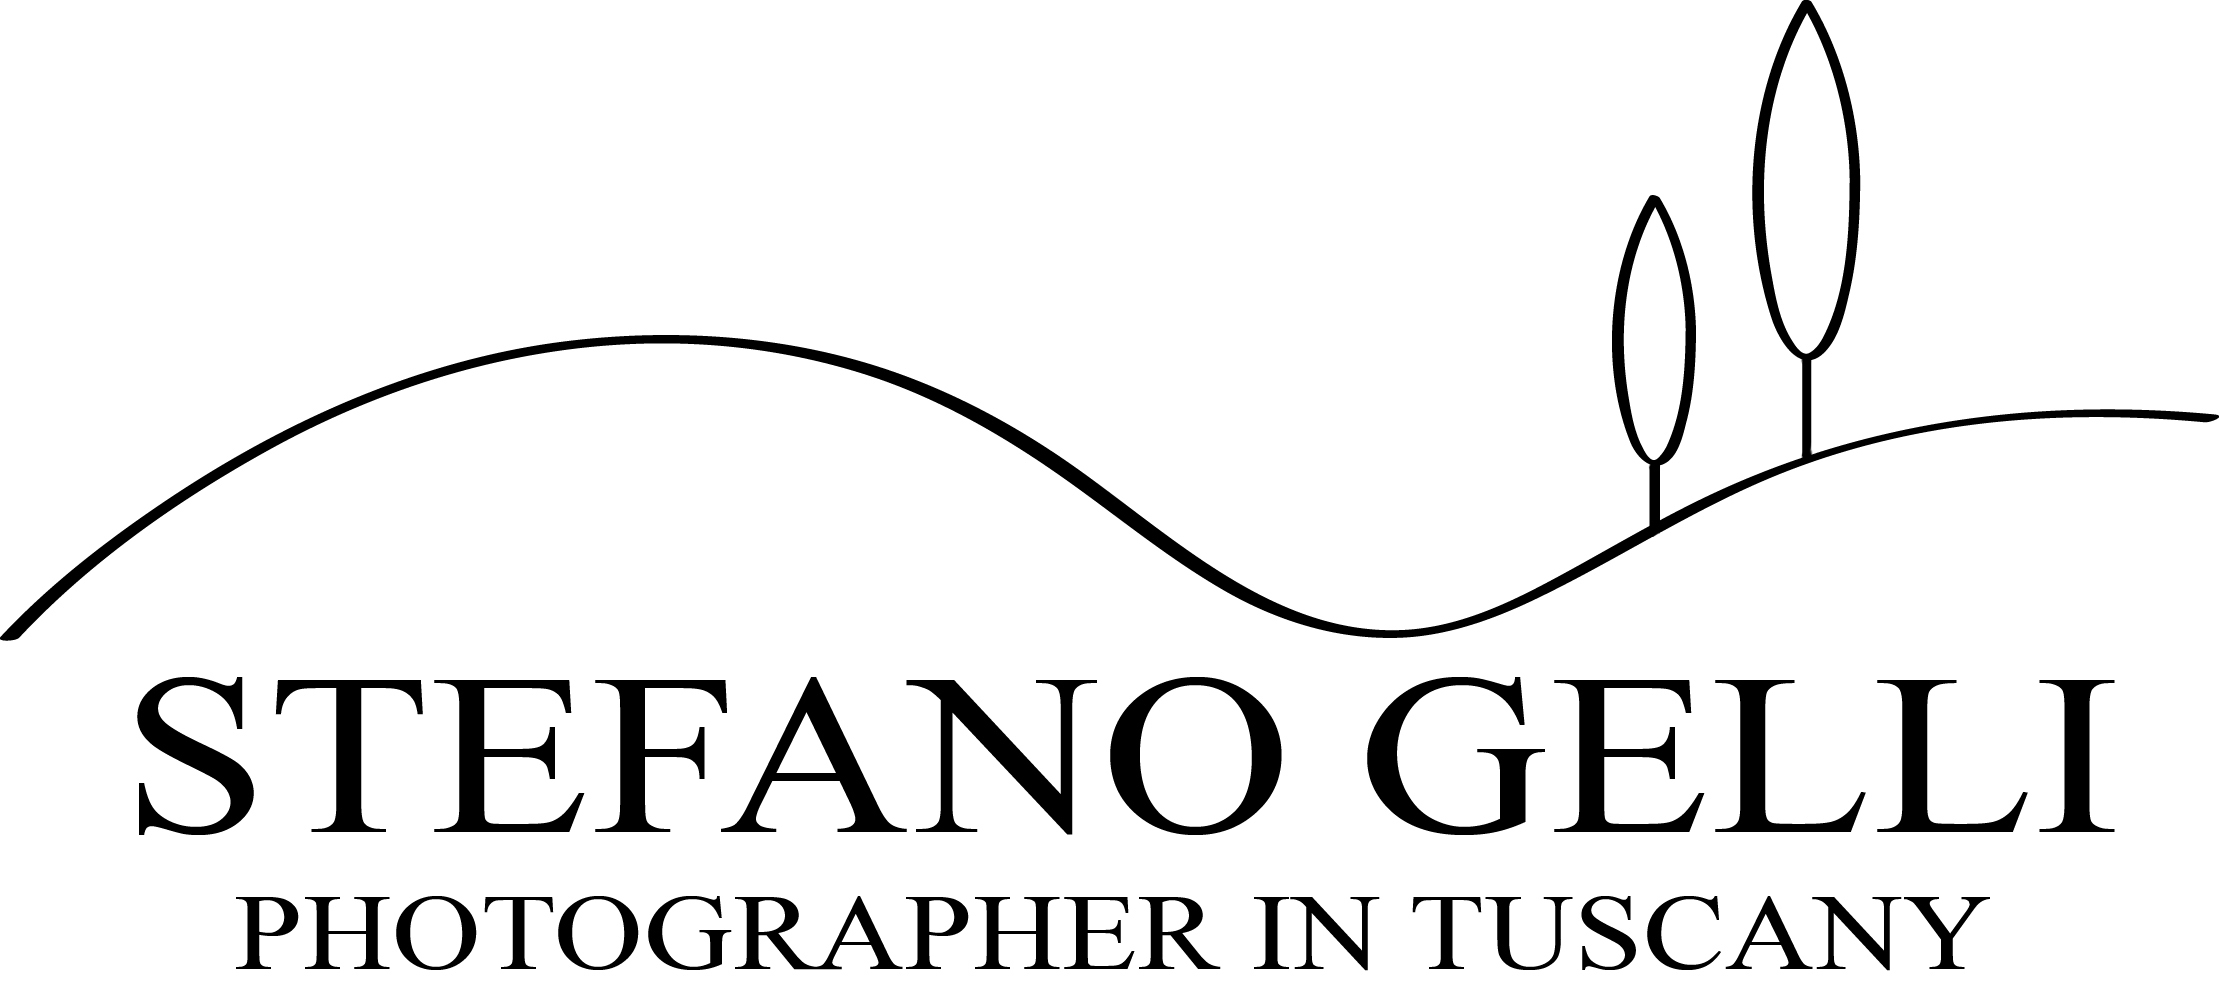 PHOTOGRAPHER IN TUSCANY